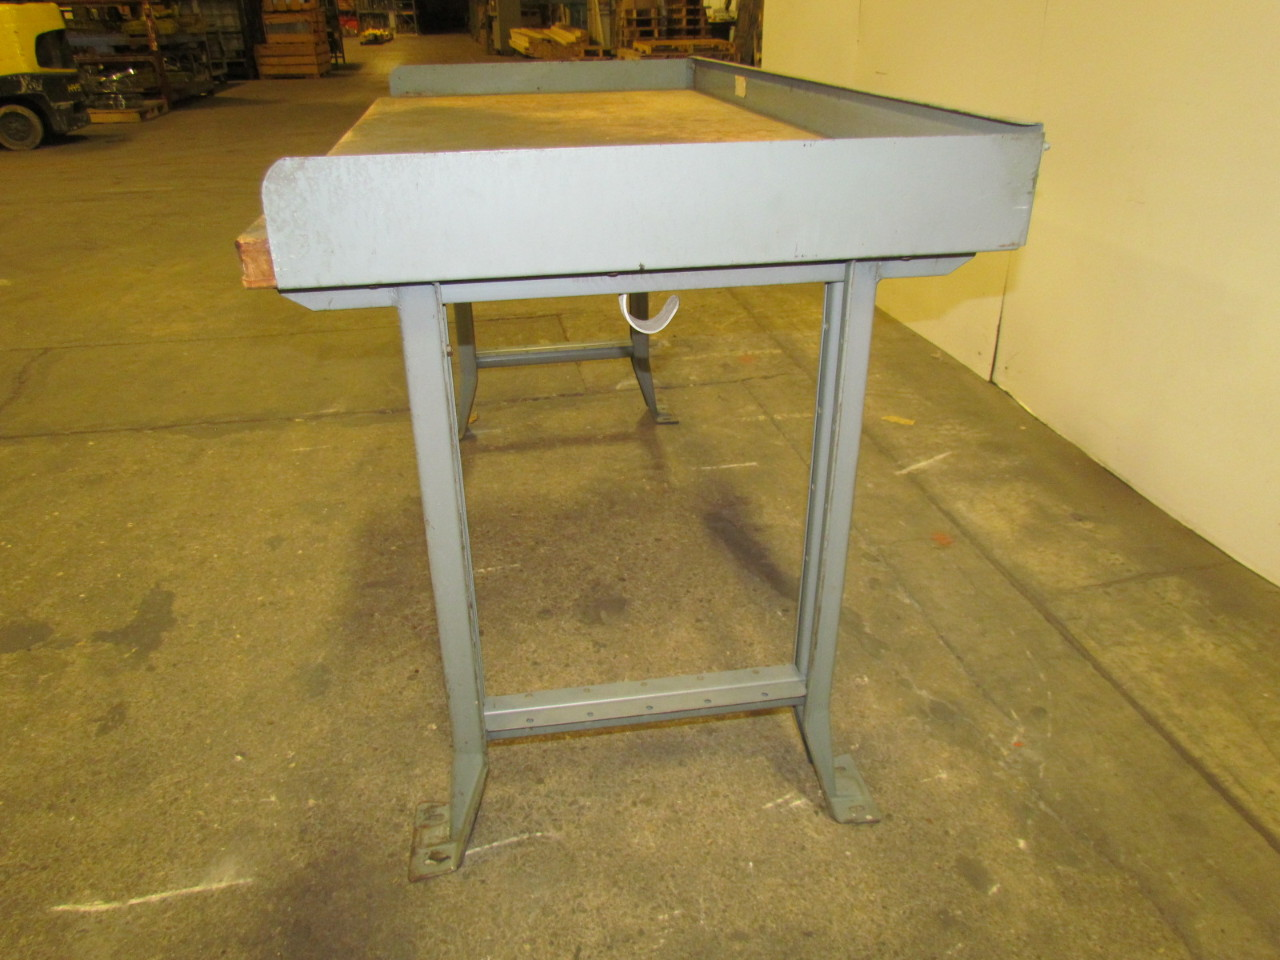 Table Height 36: Adjustable Height Welded Steel Frame Workbench Table